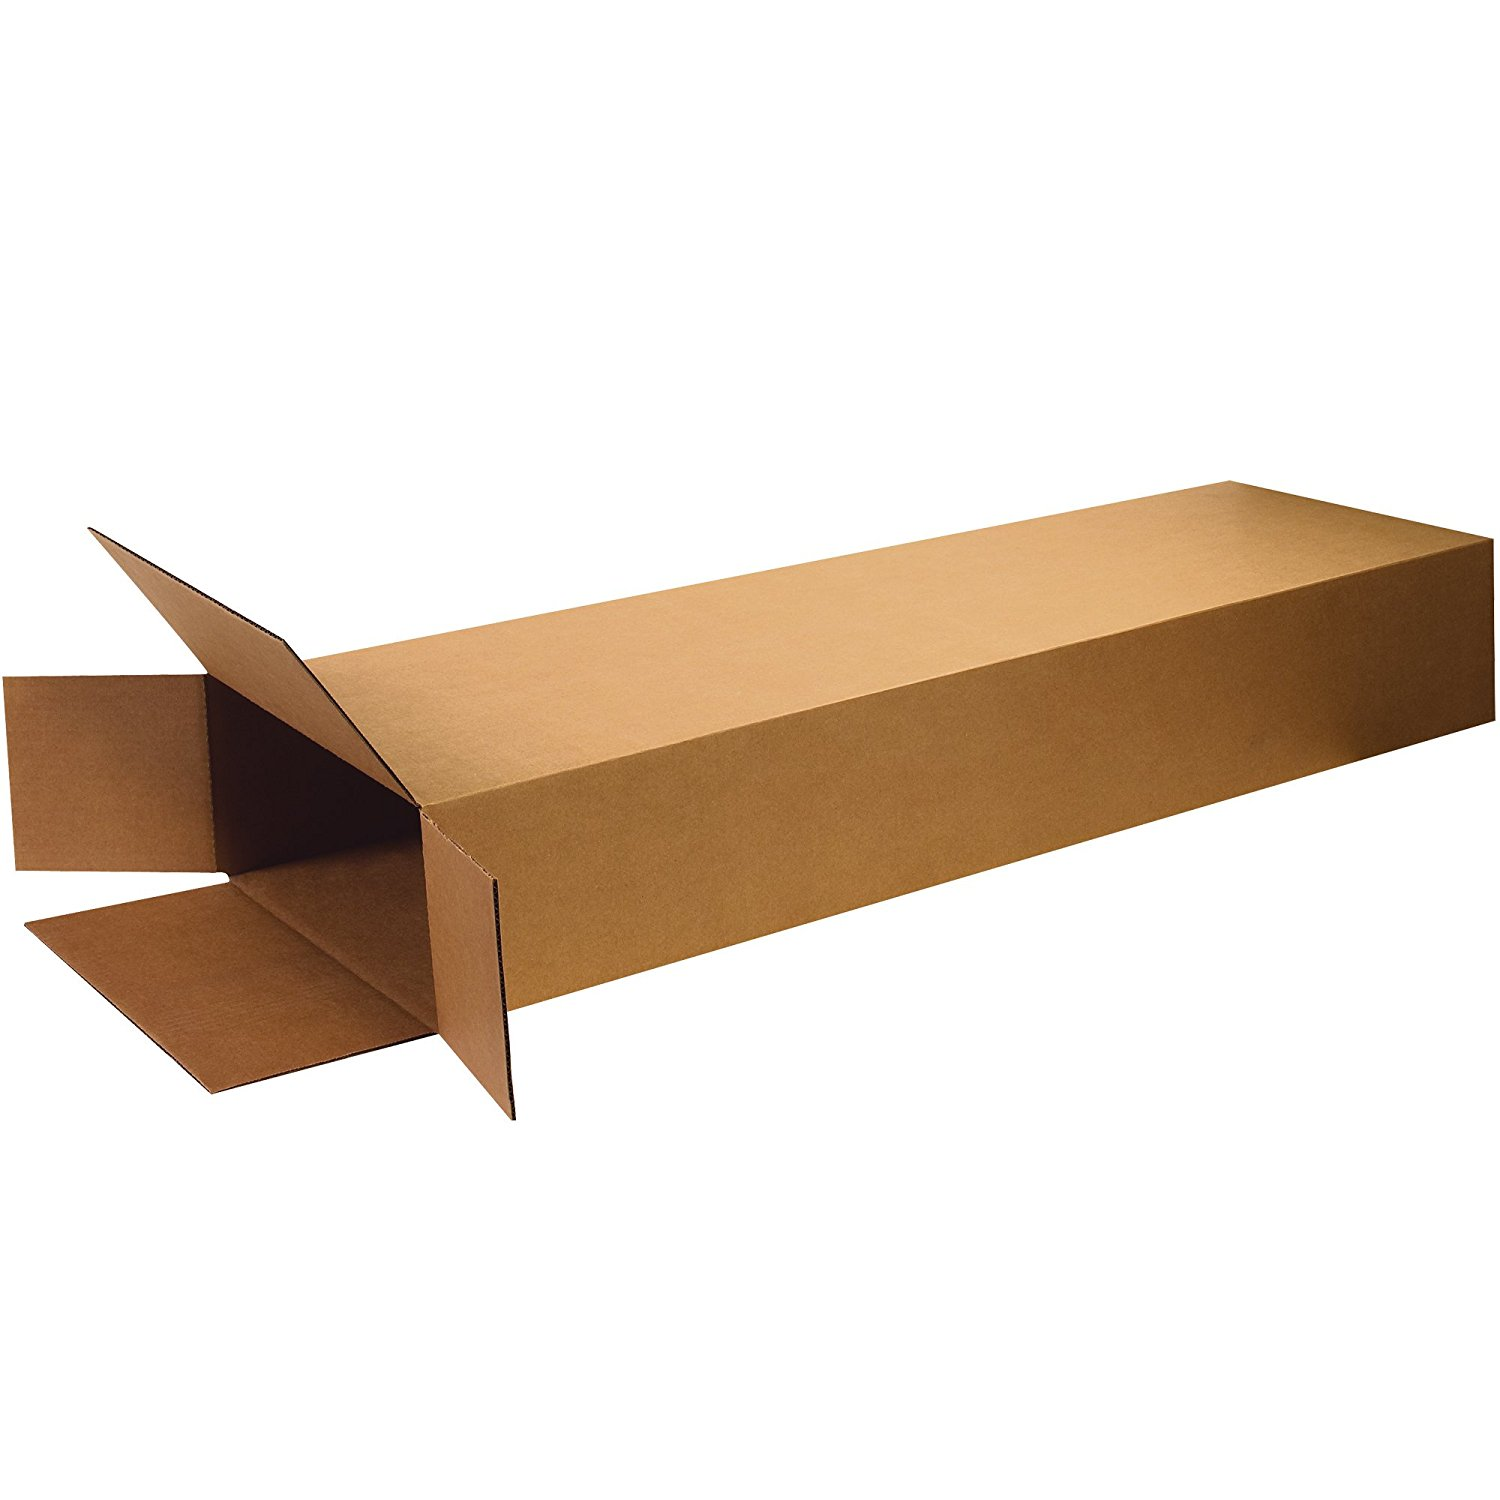 "Heavy-Duty Side Loading Large Moving boxes, 14""L x 4""W x 68""H, 4"" width, 68"" Height, 14"" Length"